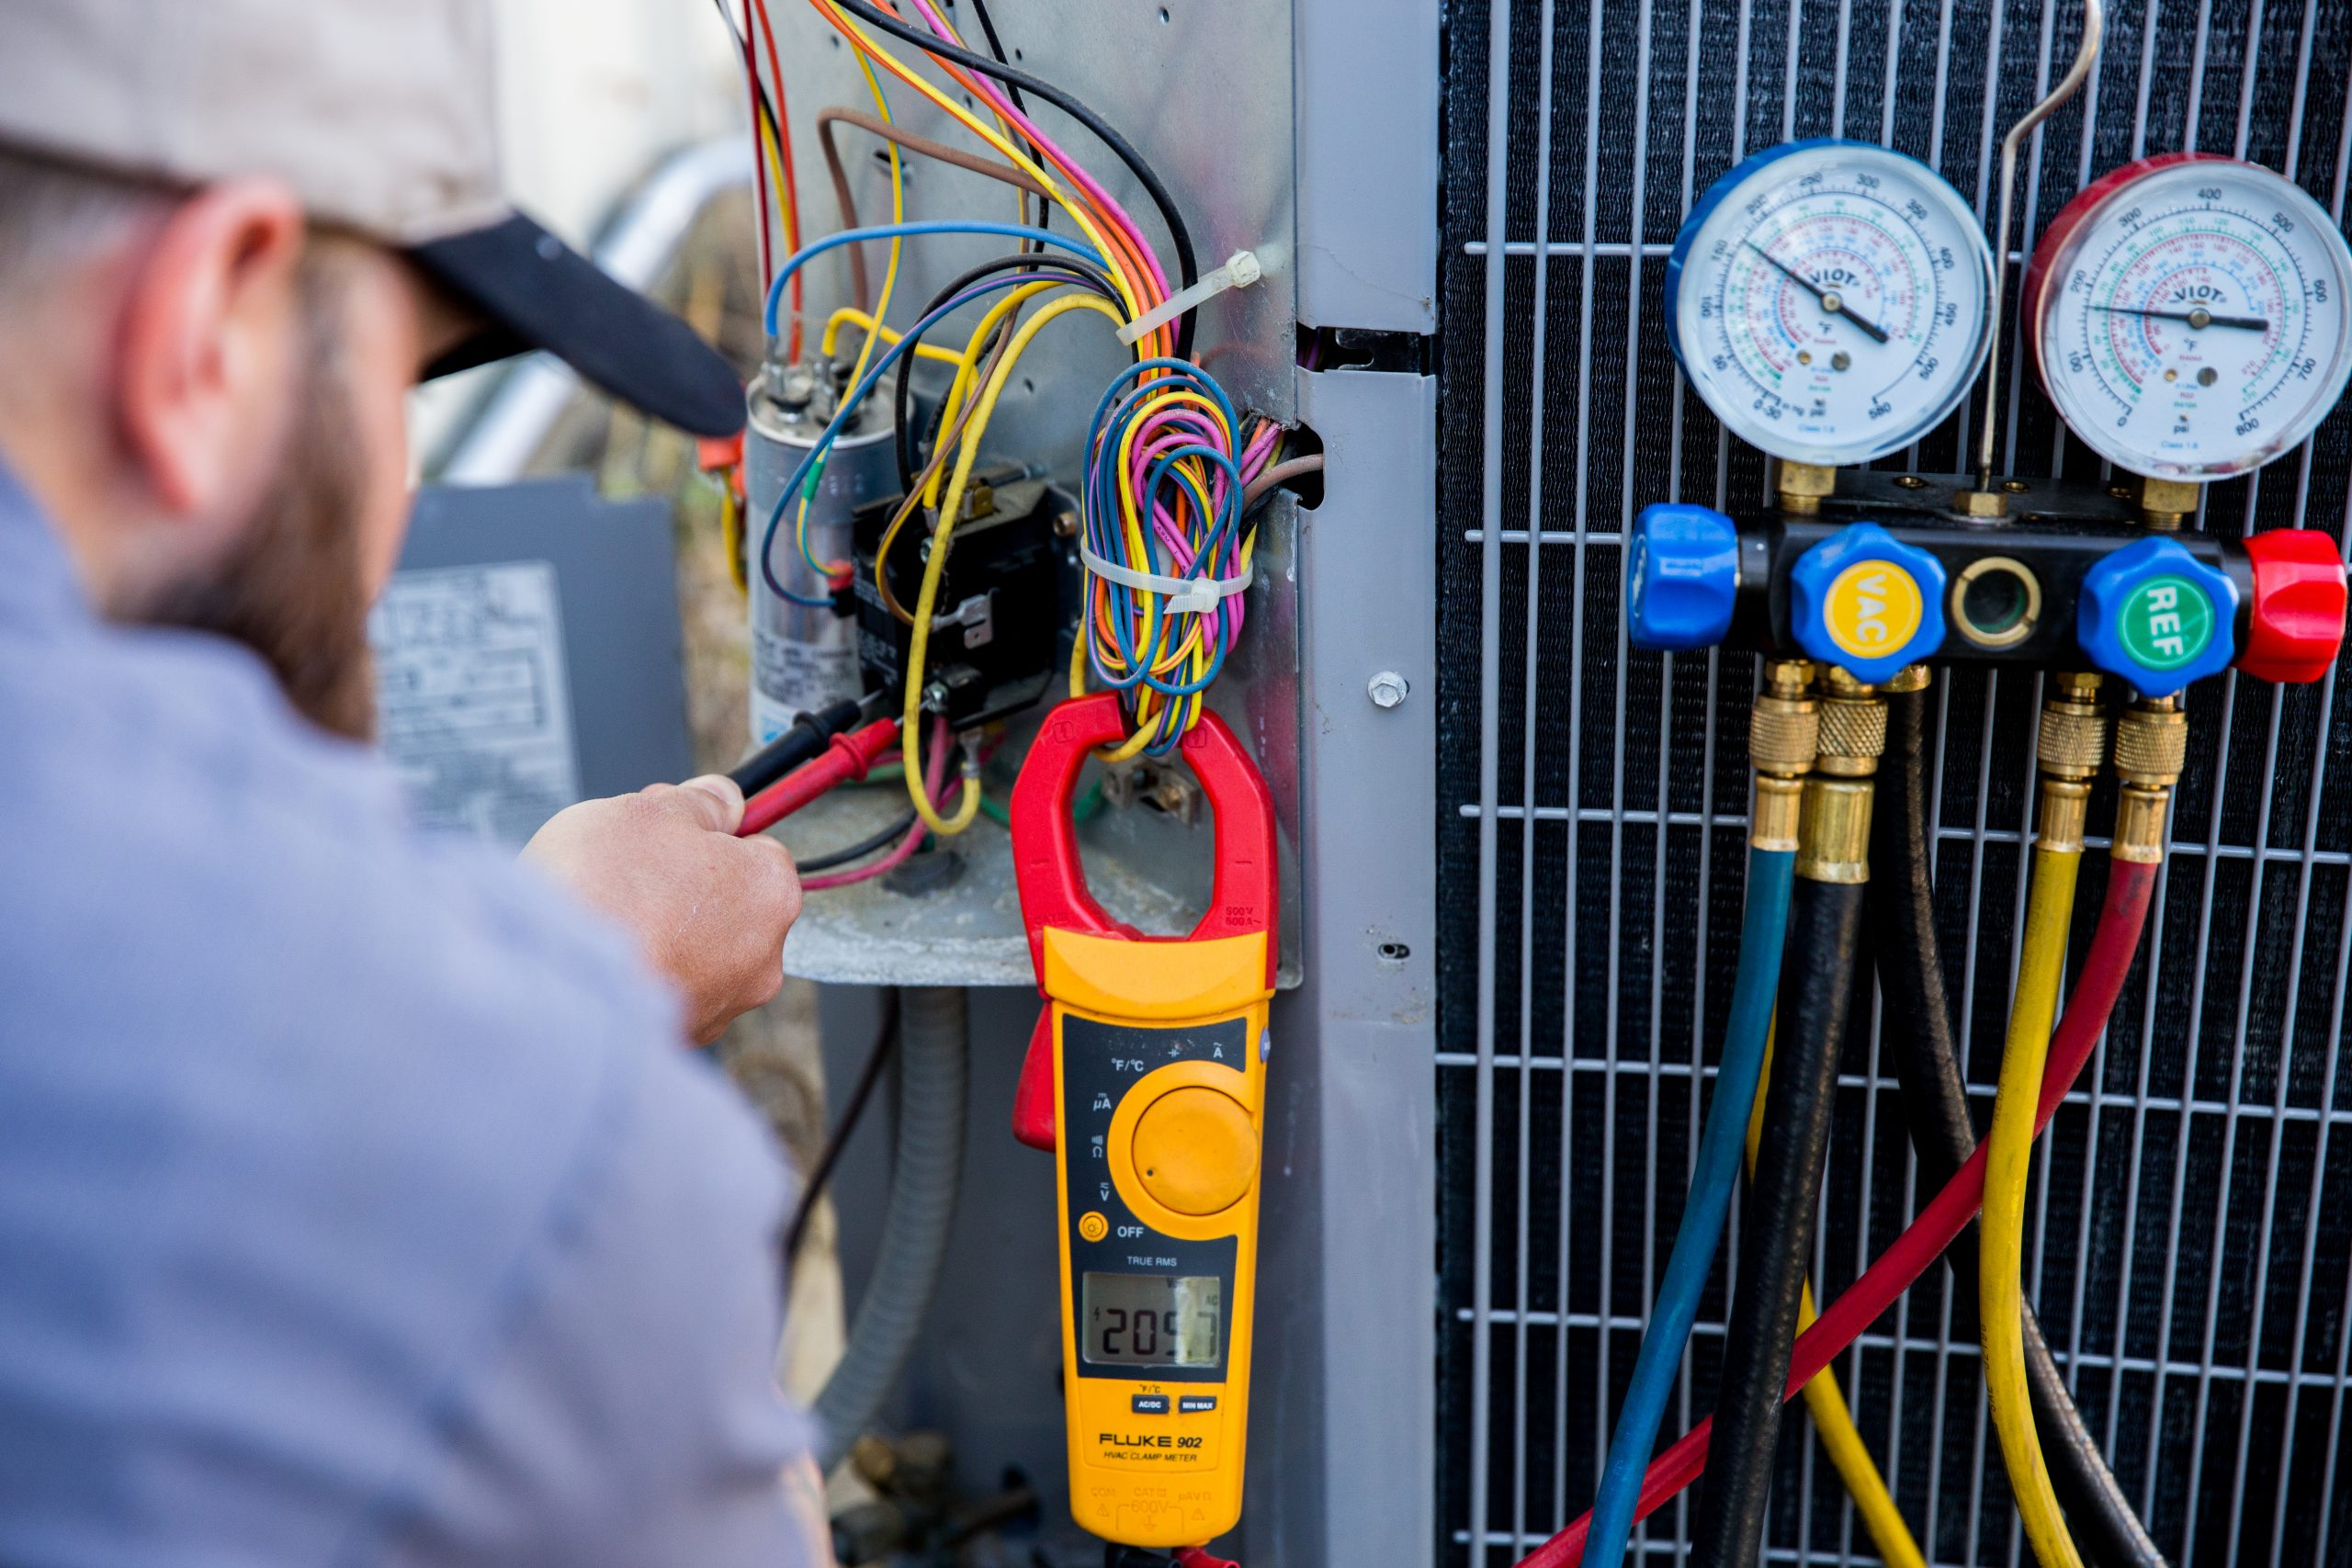 technician inspecting gages on hvac system